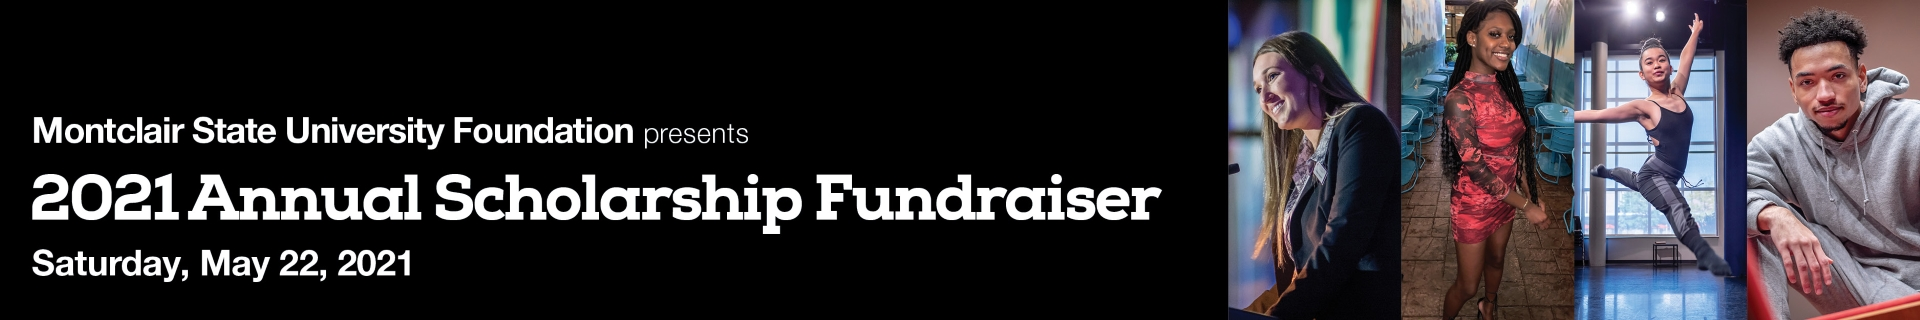 Montclair State University Foundation presents the 2021 Annual Scholarship Fundraiser - Saturday, May 22, 2021